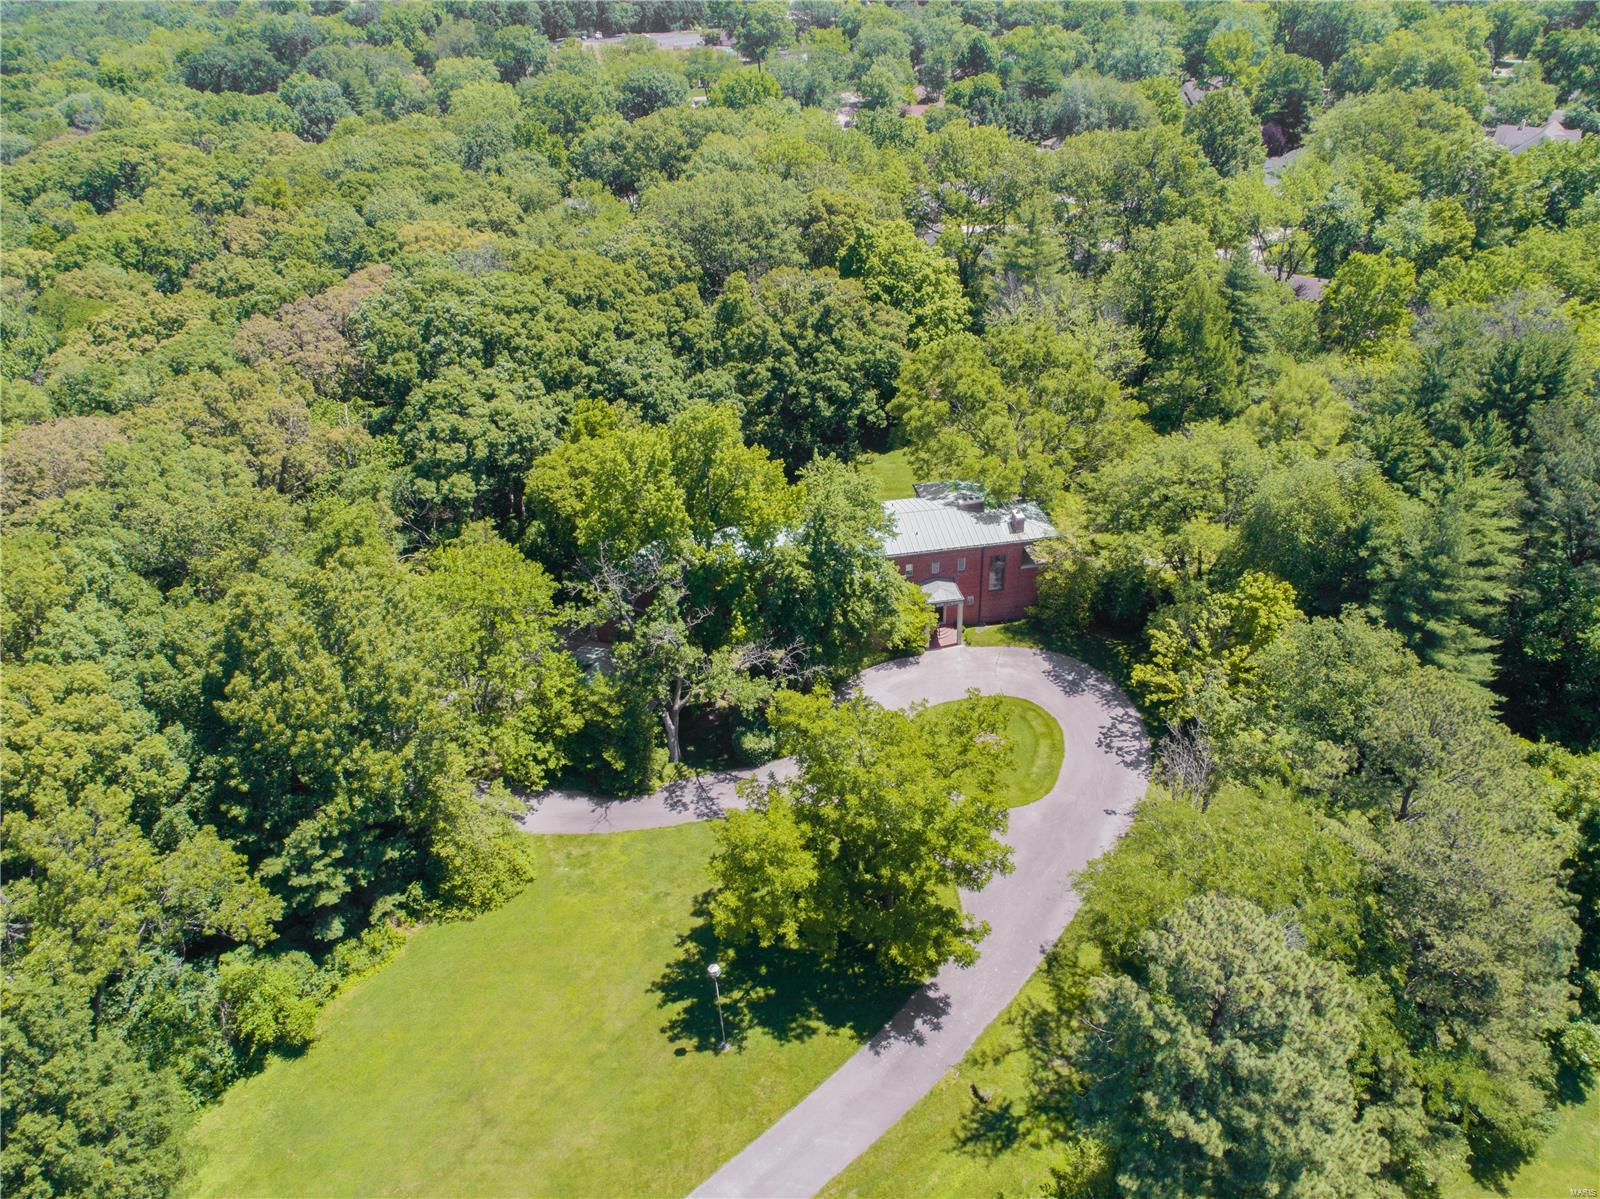 Situated on almost 5 acres in Huntleigh, this property offers privacy and lovely views of the surrounding woods. Substantial home remains on the property that can be renovated. Lot can not be subdivided.